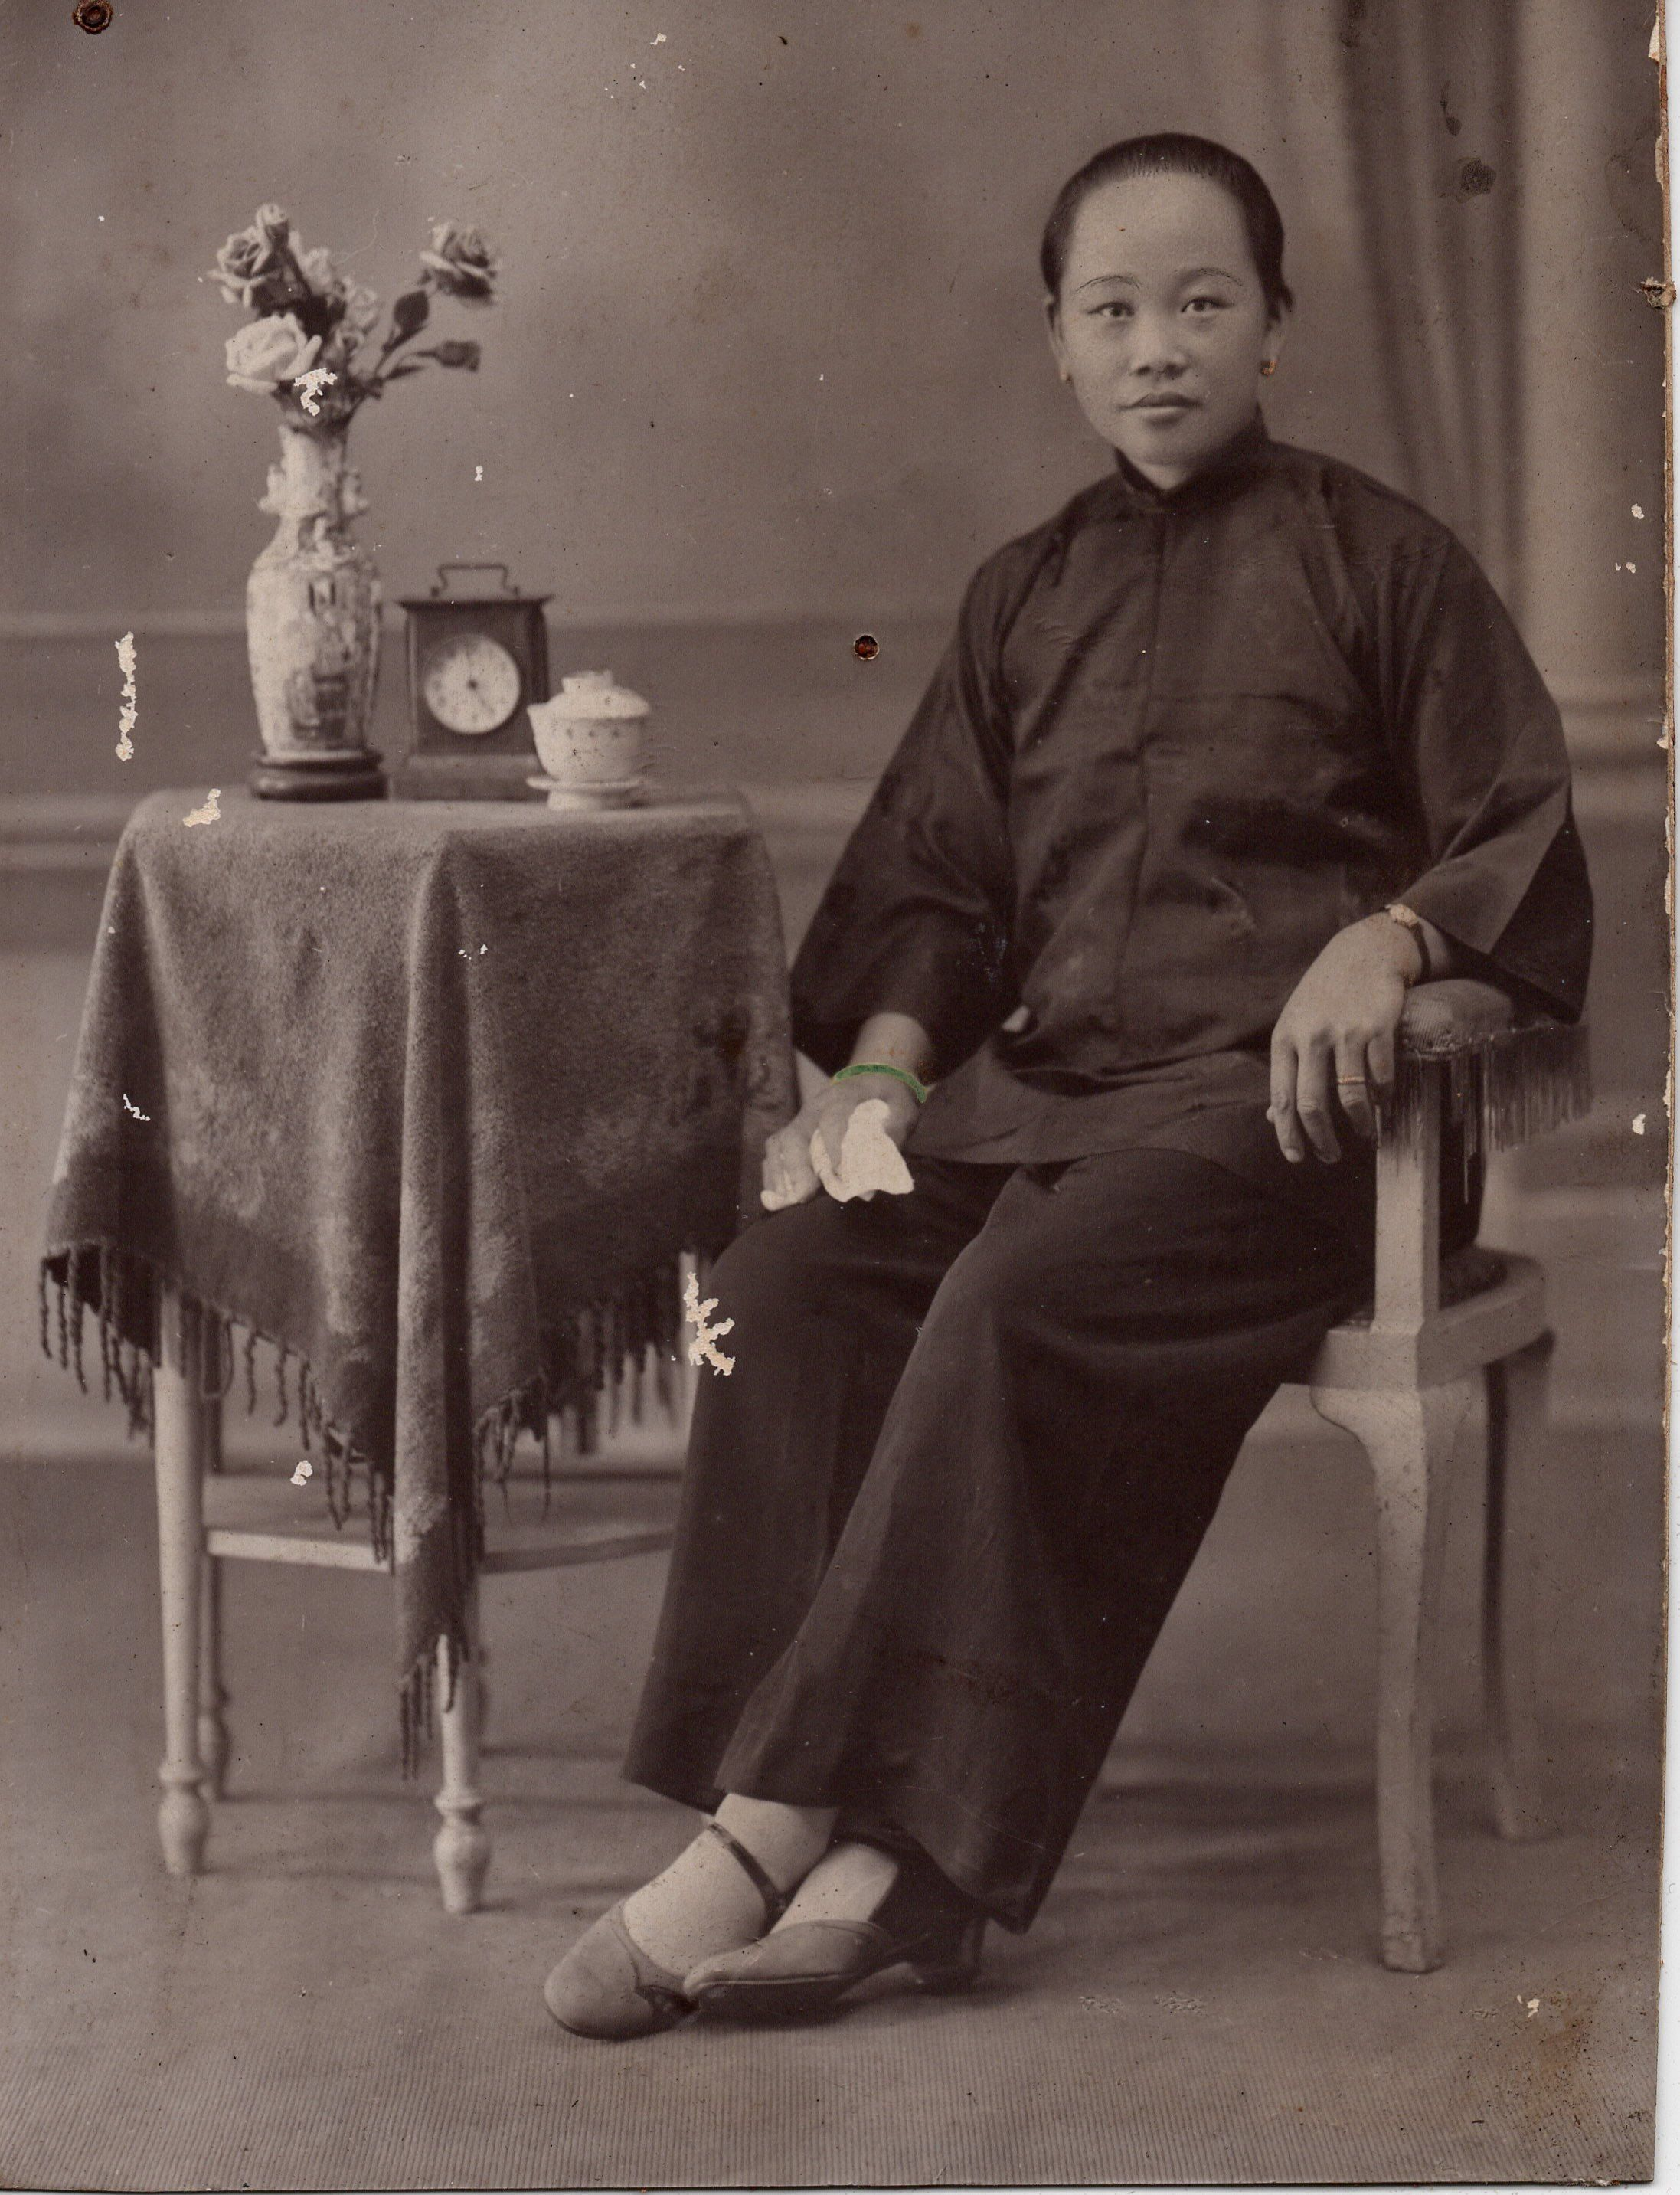 C 1890 early chinese portrait photograph black and white